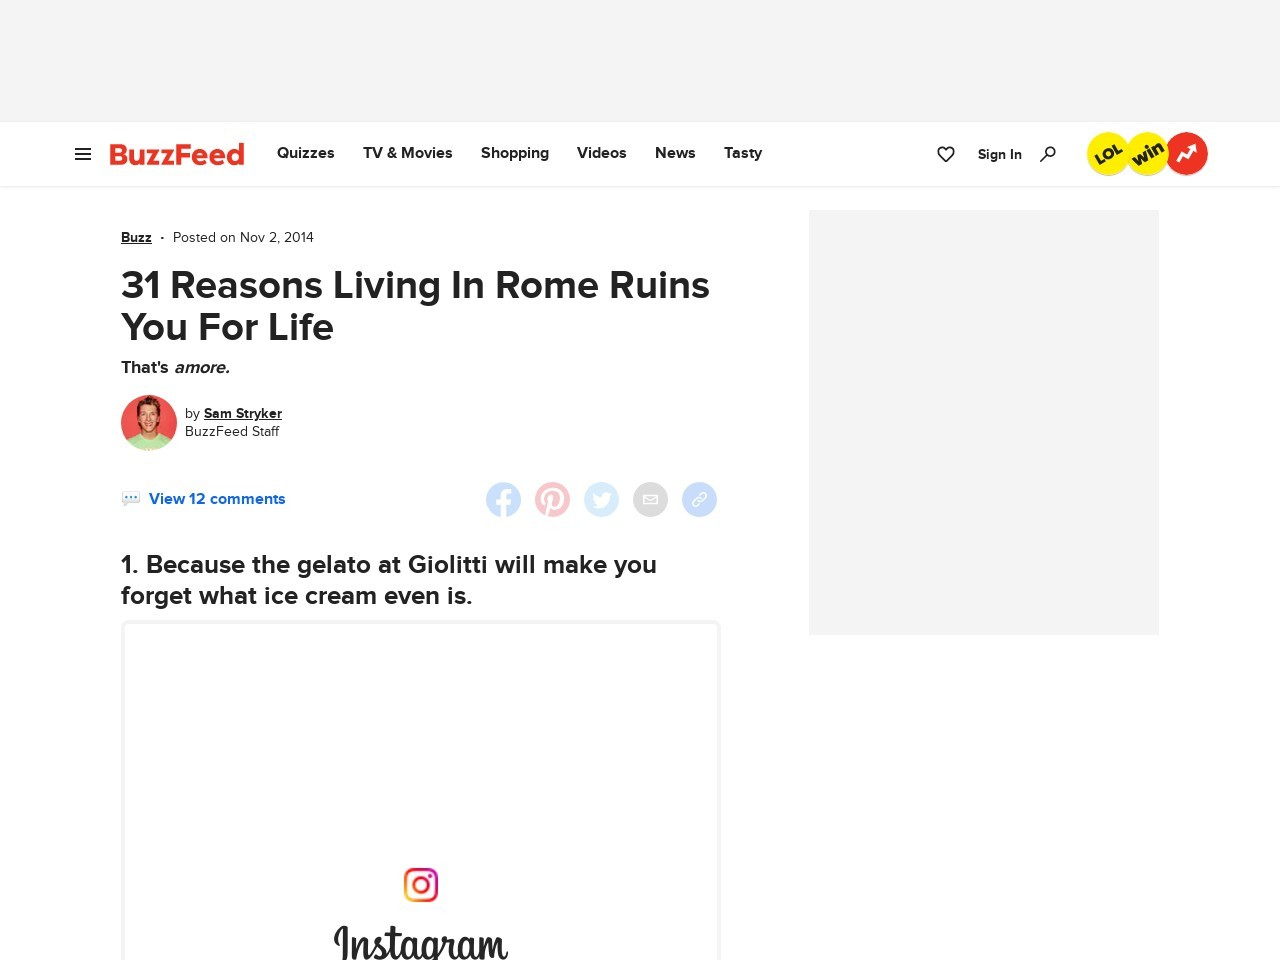 31 Reasons Living In Rome Ruins You For Life